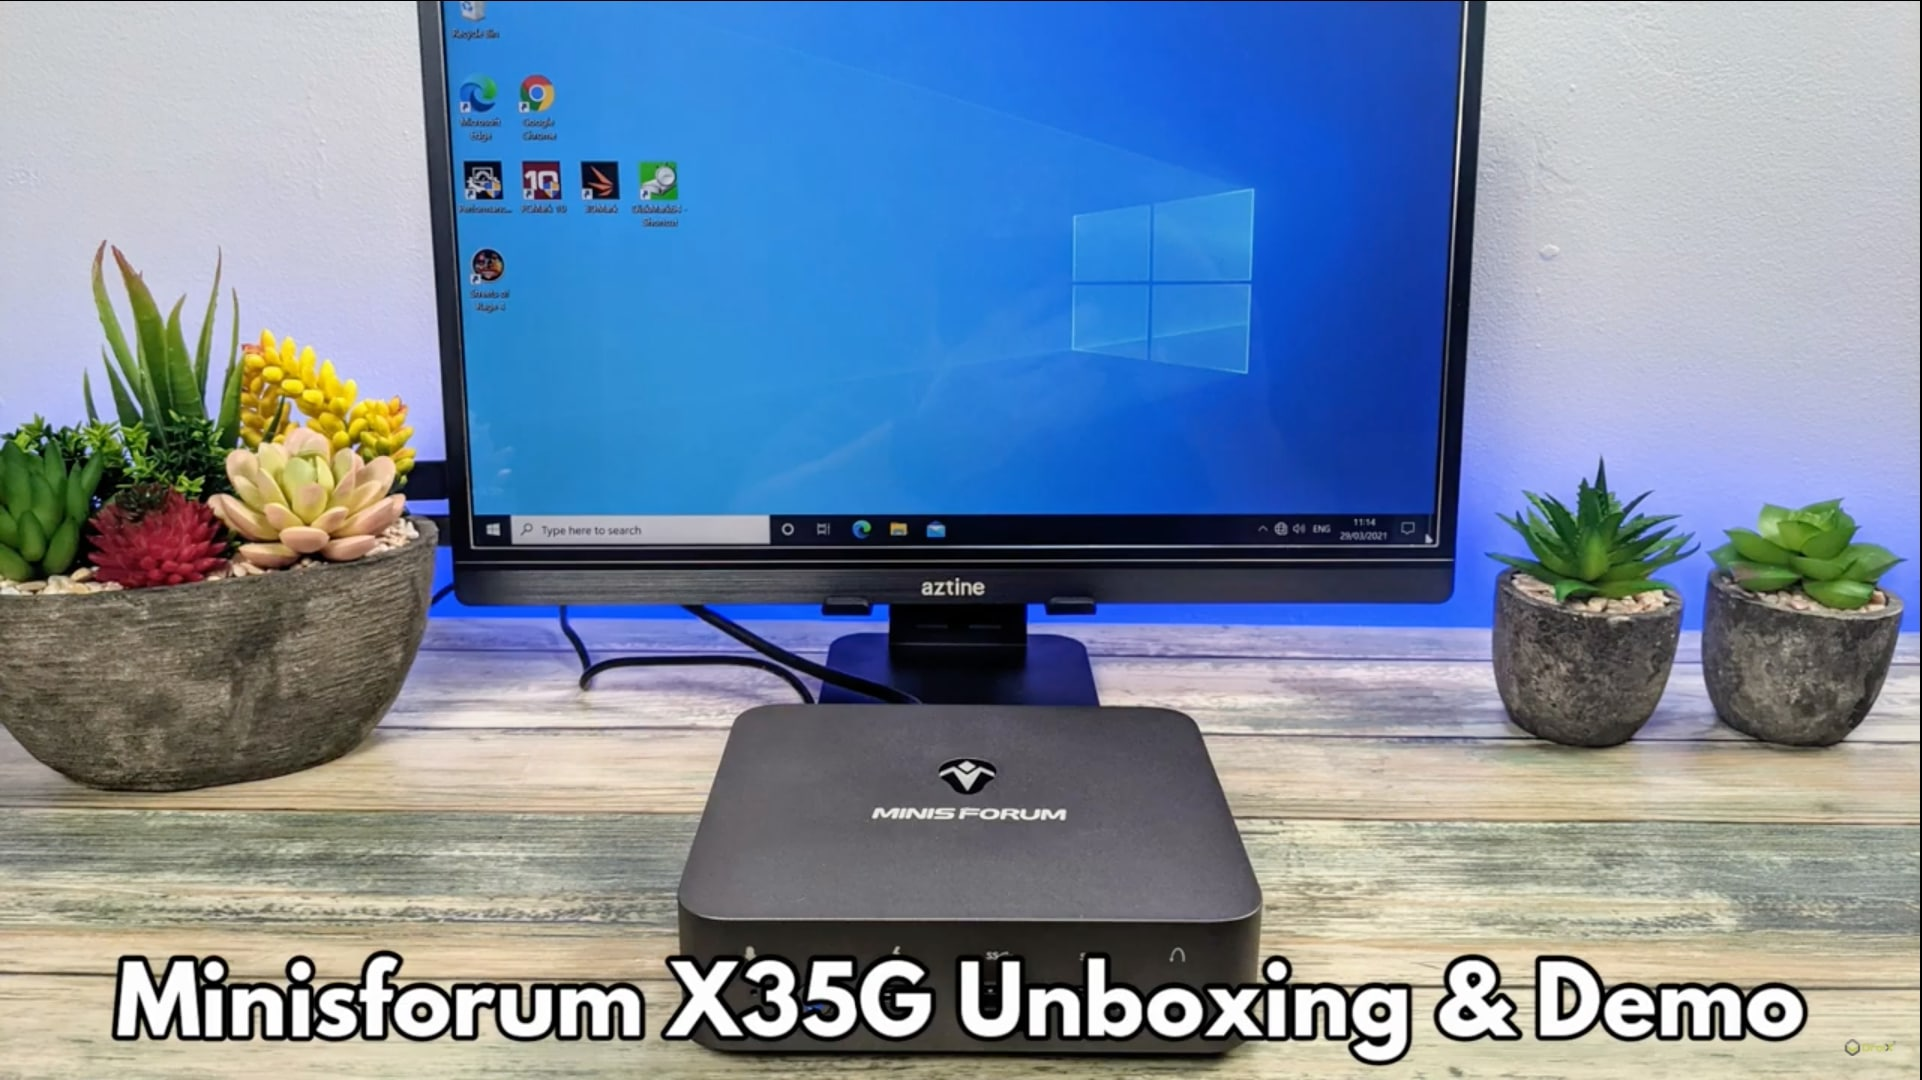 MinisForum X35G Unboxing And Demo